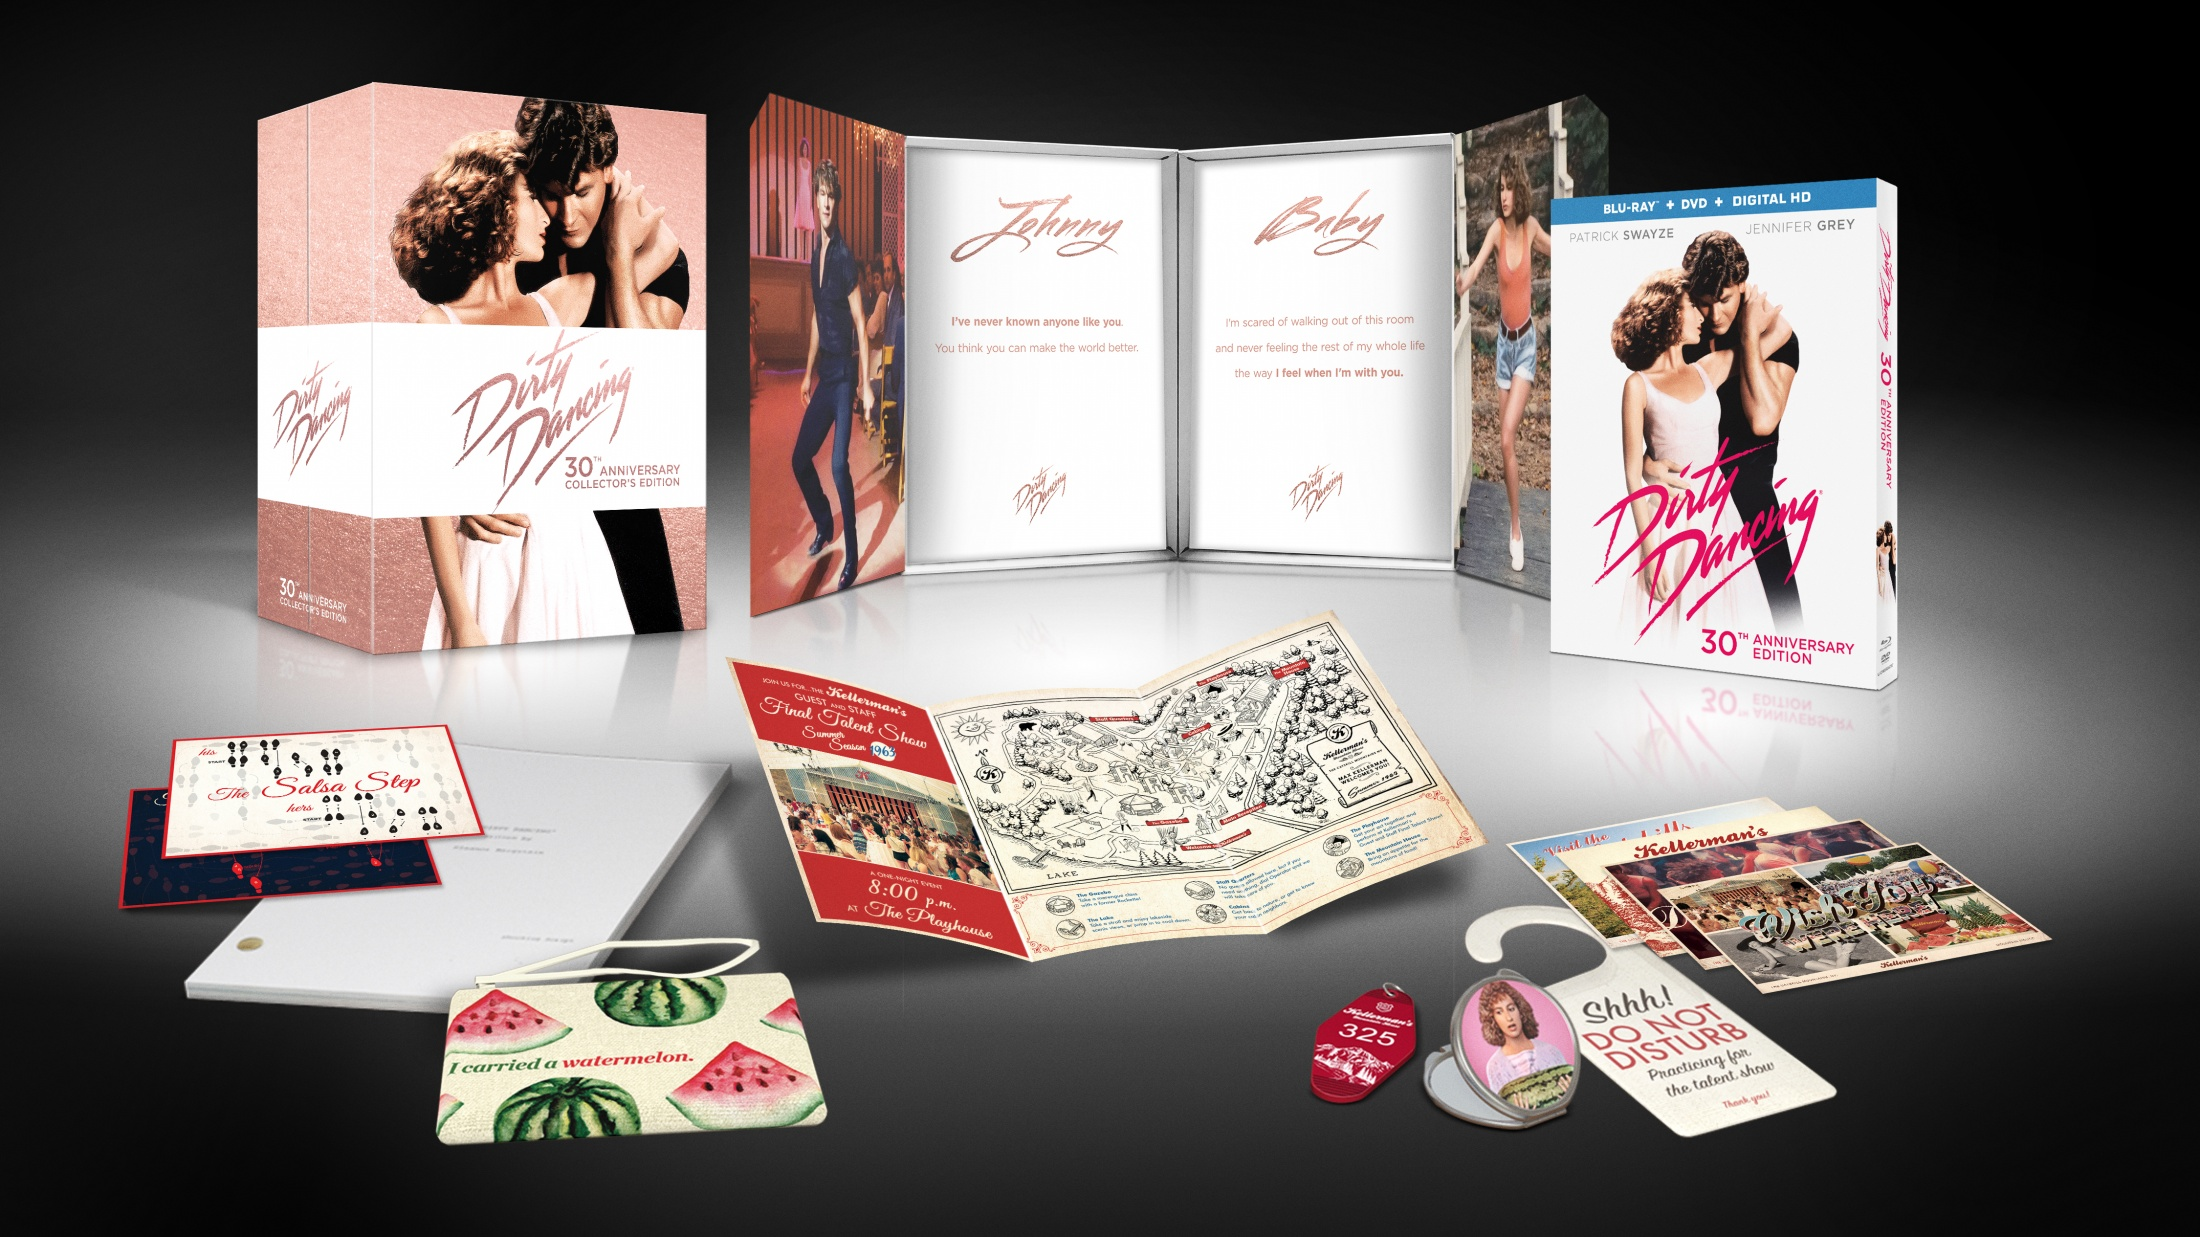 Thumbnail for Dirty Dancing 30th Anniversary Collector's Edition